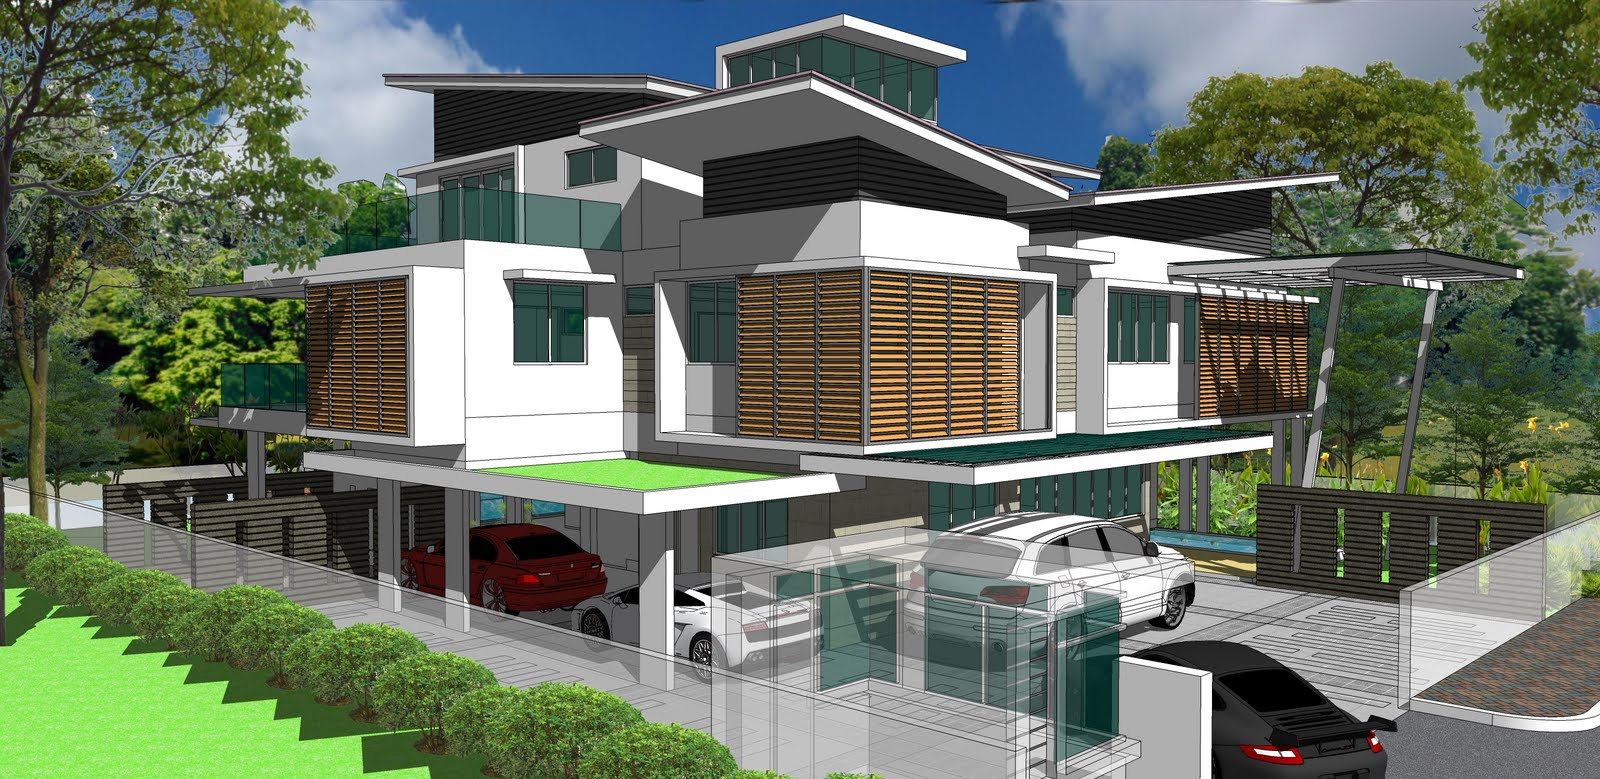 Ala design bungalow jln ara bangsar for Best house design malaysia